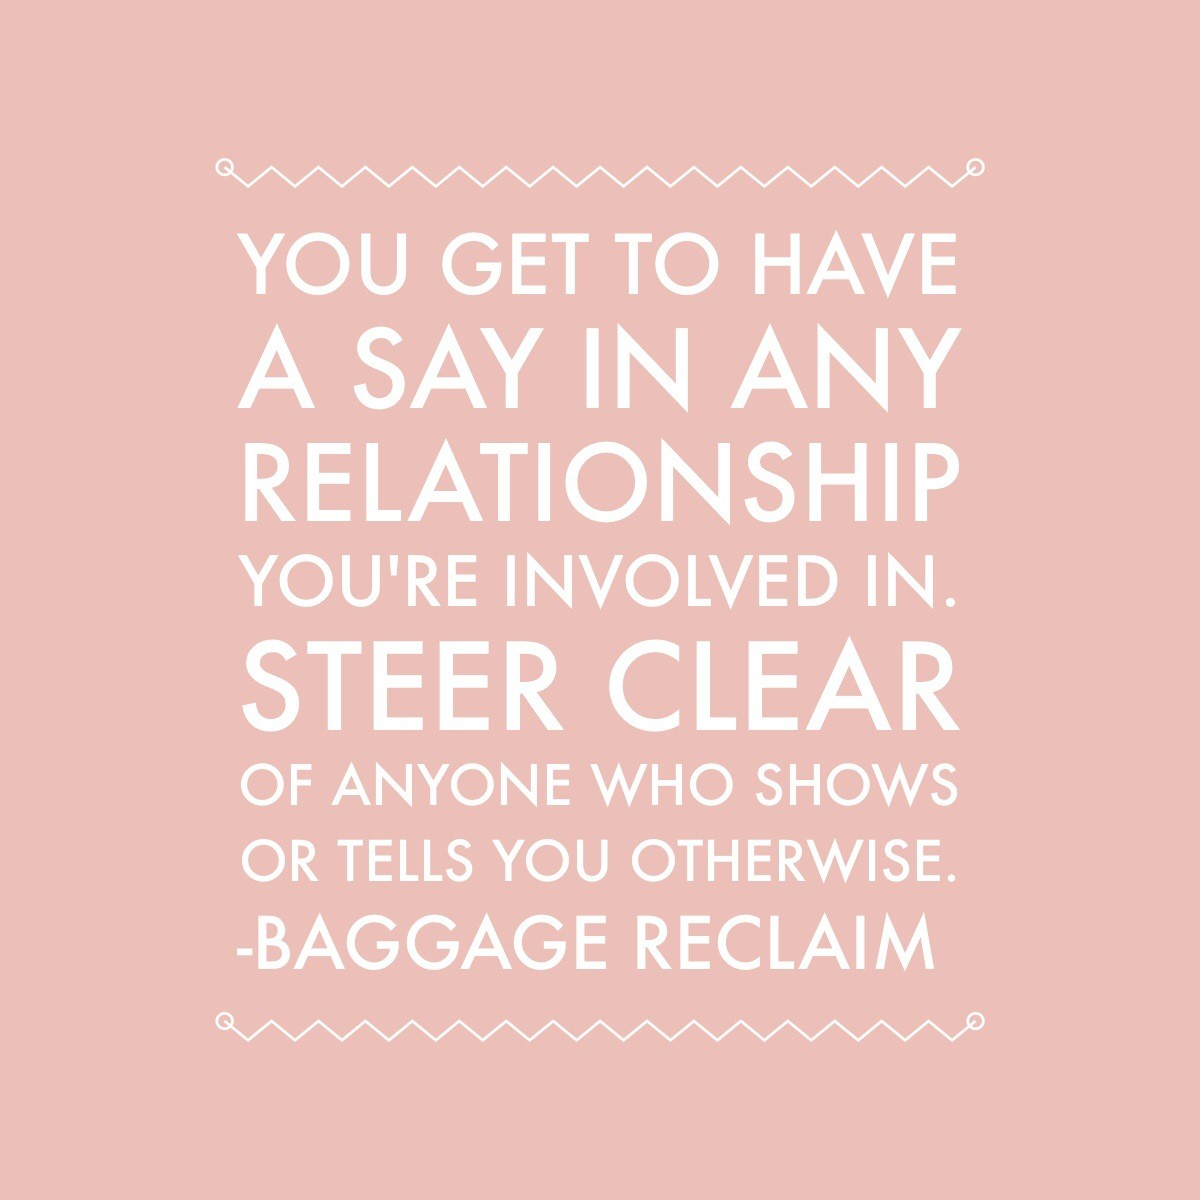 Being passive and a pleaser can make you a sitting duck for unavailable relationships